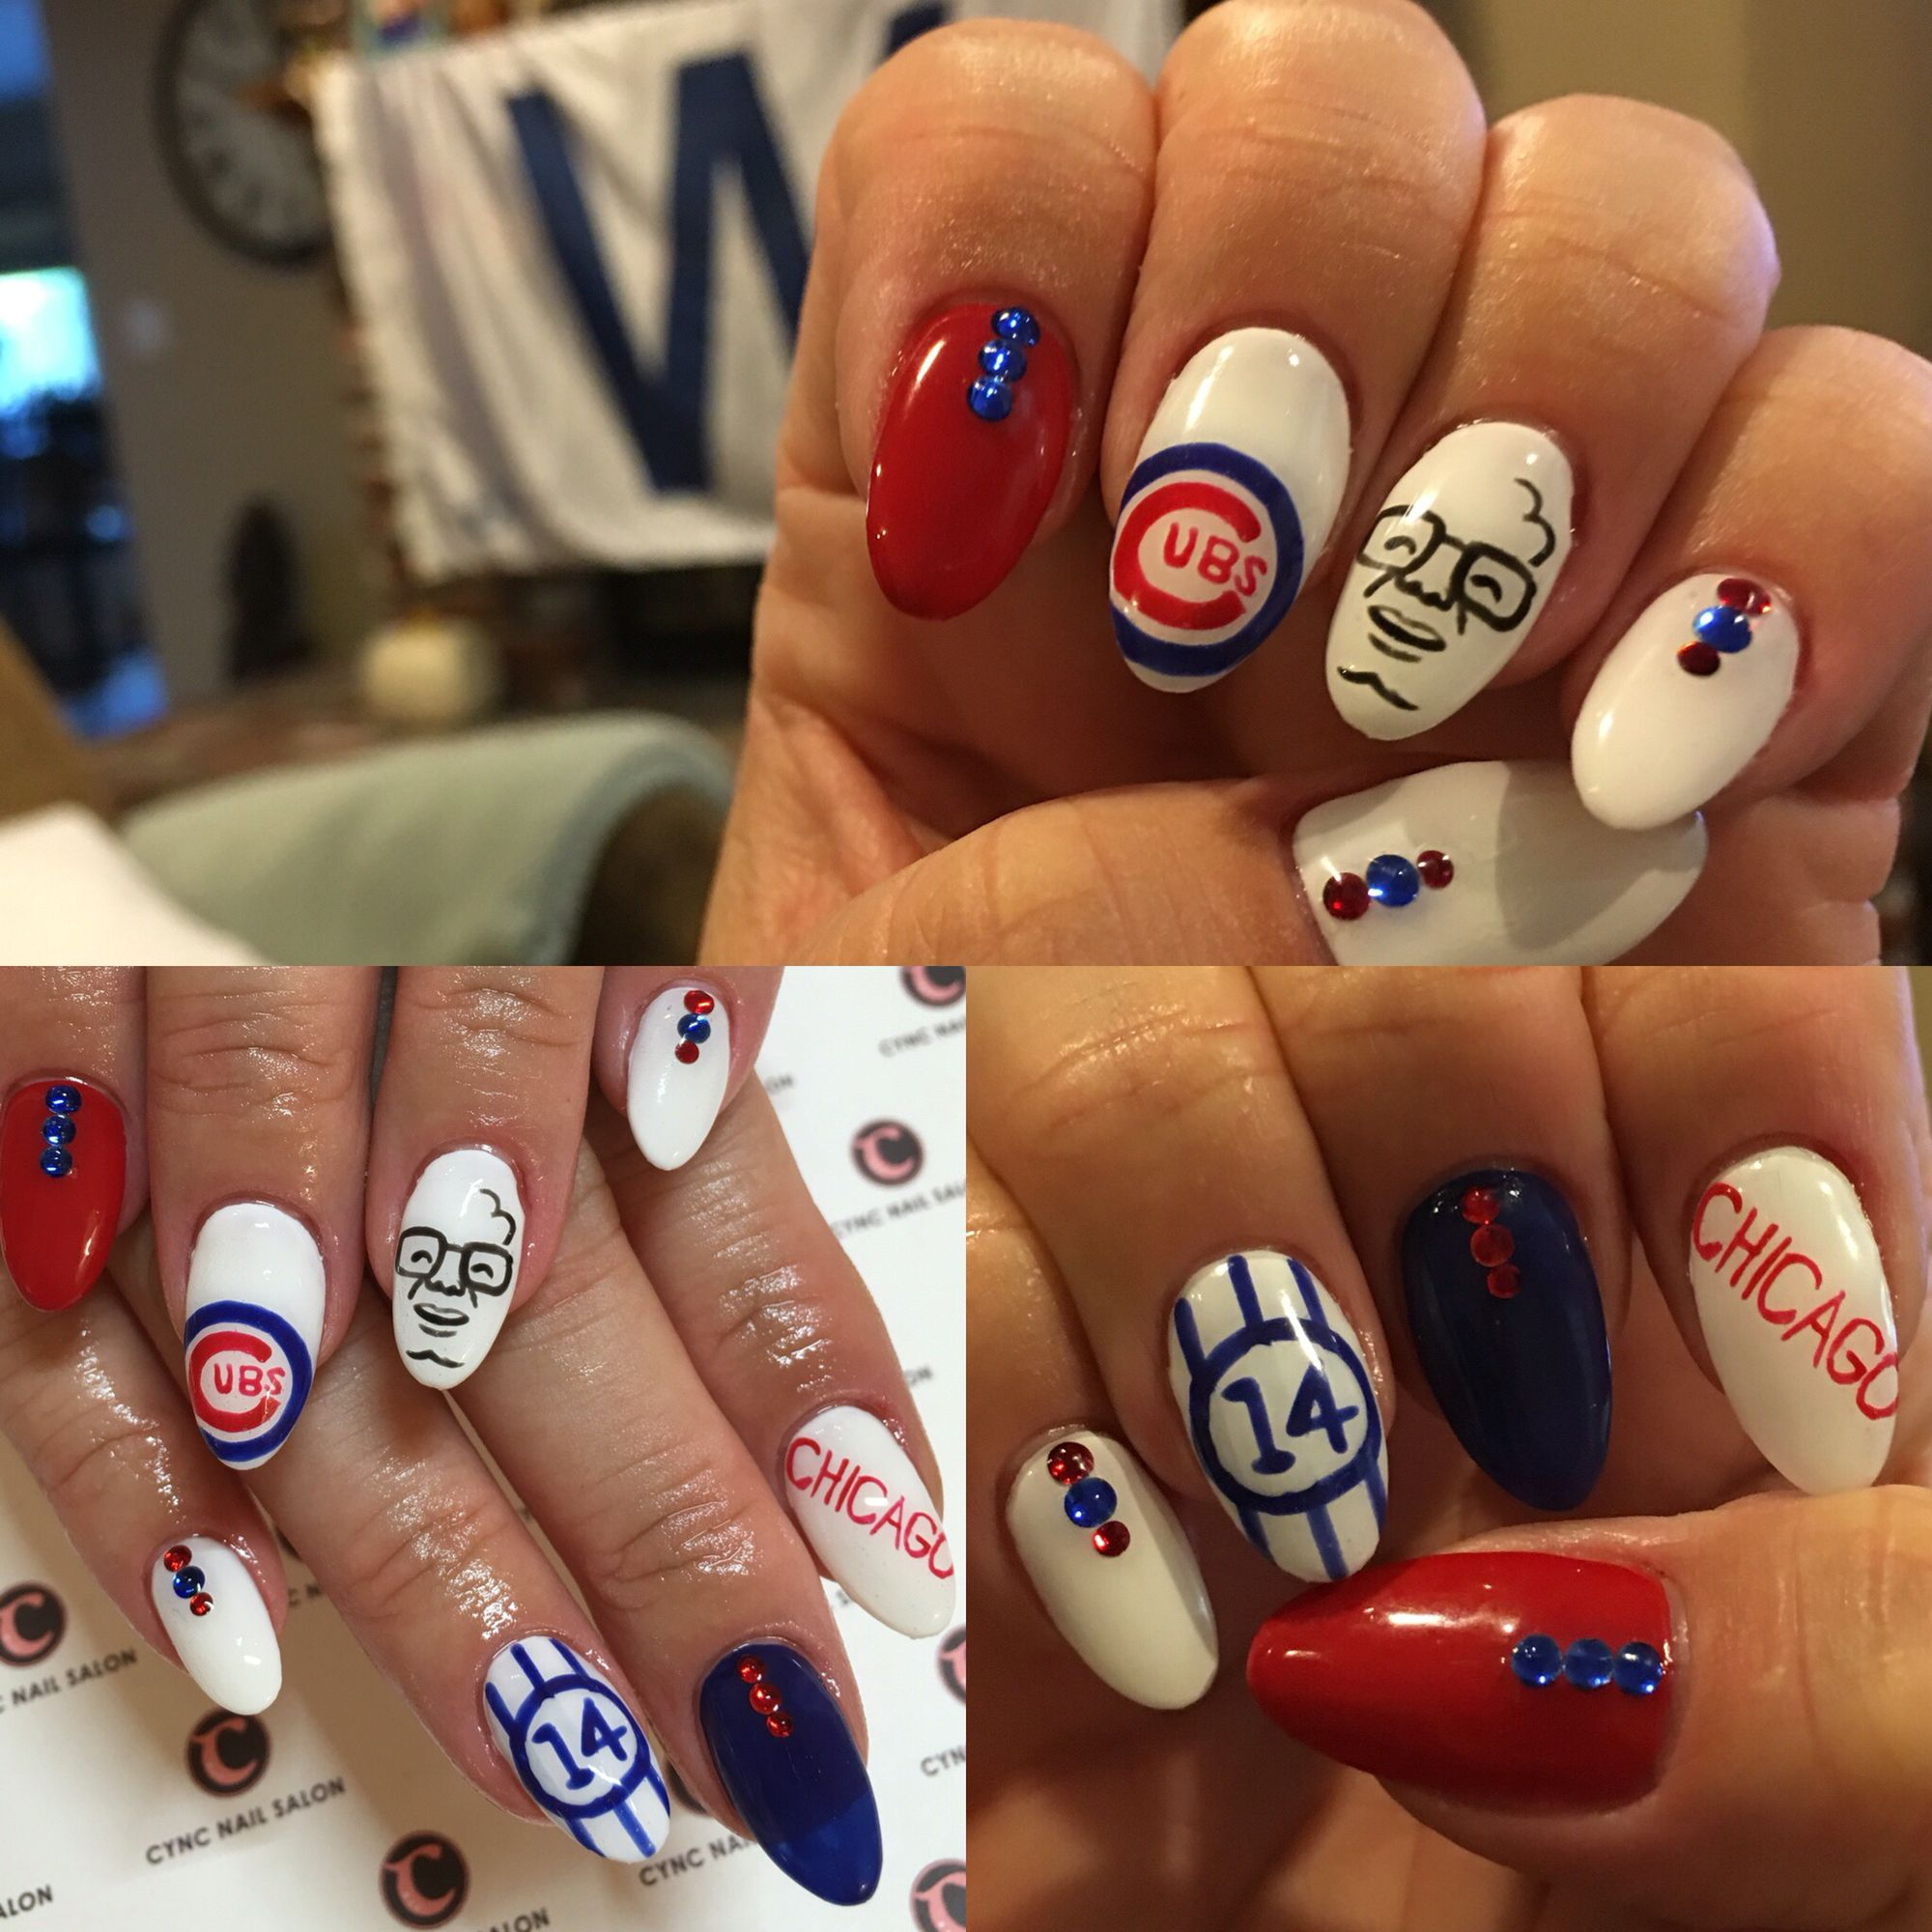 Chicago Cubs nails/manicure from Cync Nail Salon in Torrance, CA ...